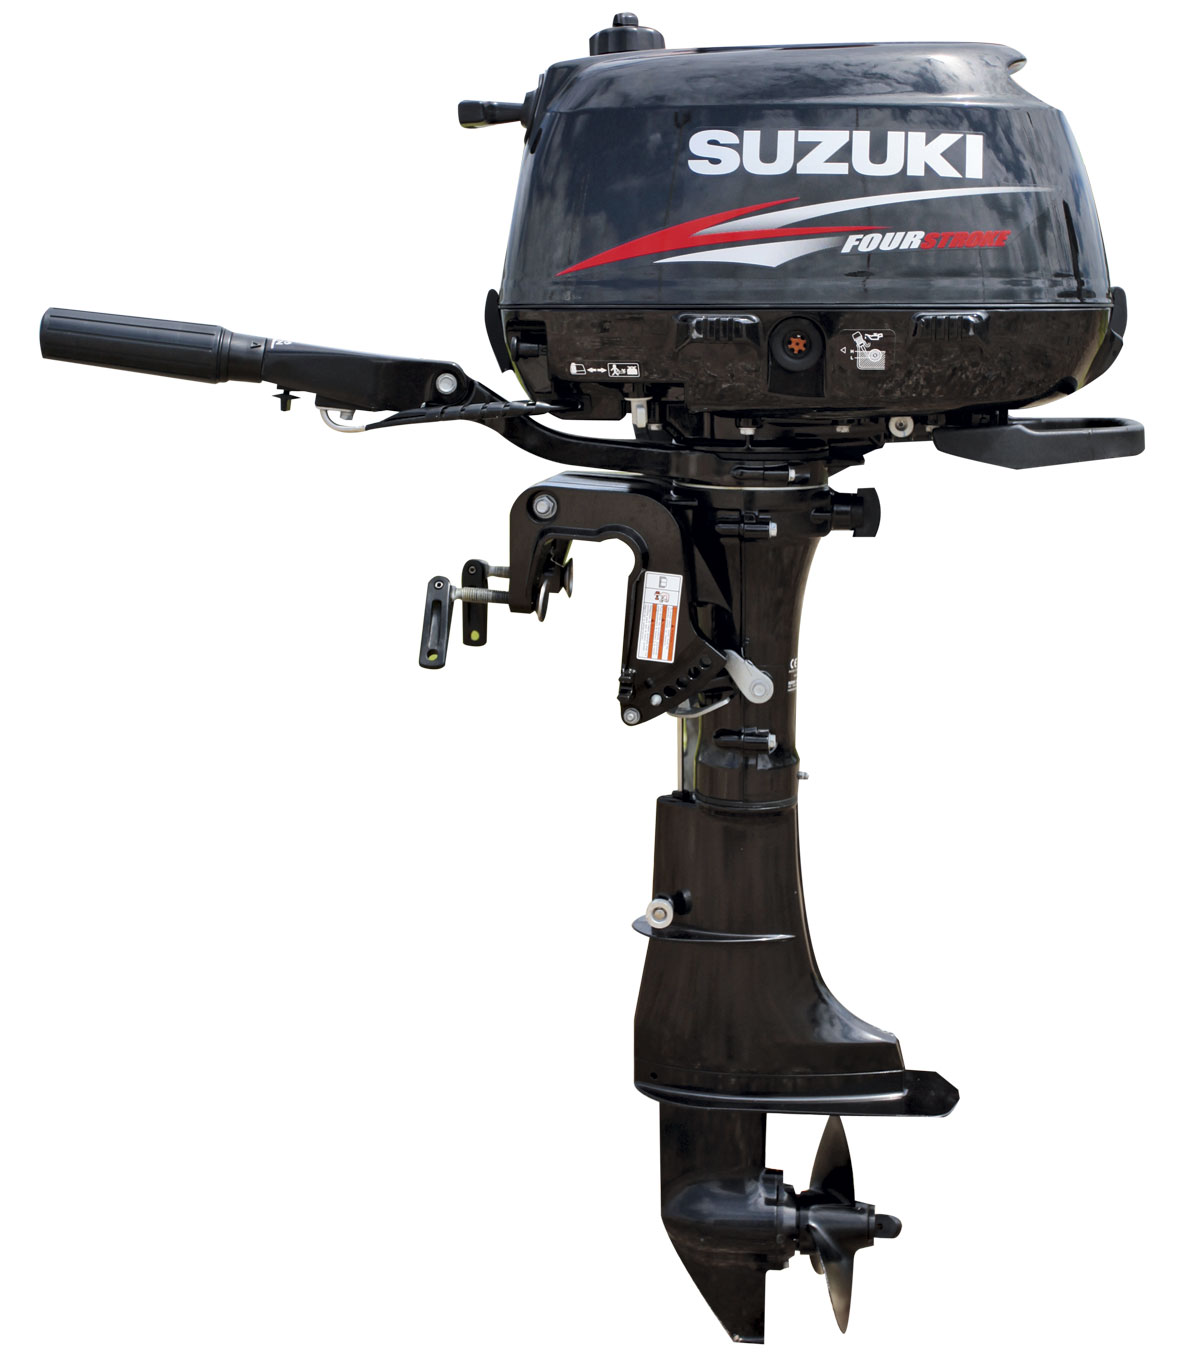 Suzuki Hp Outboard Owners Manual